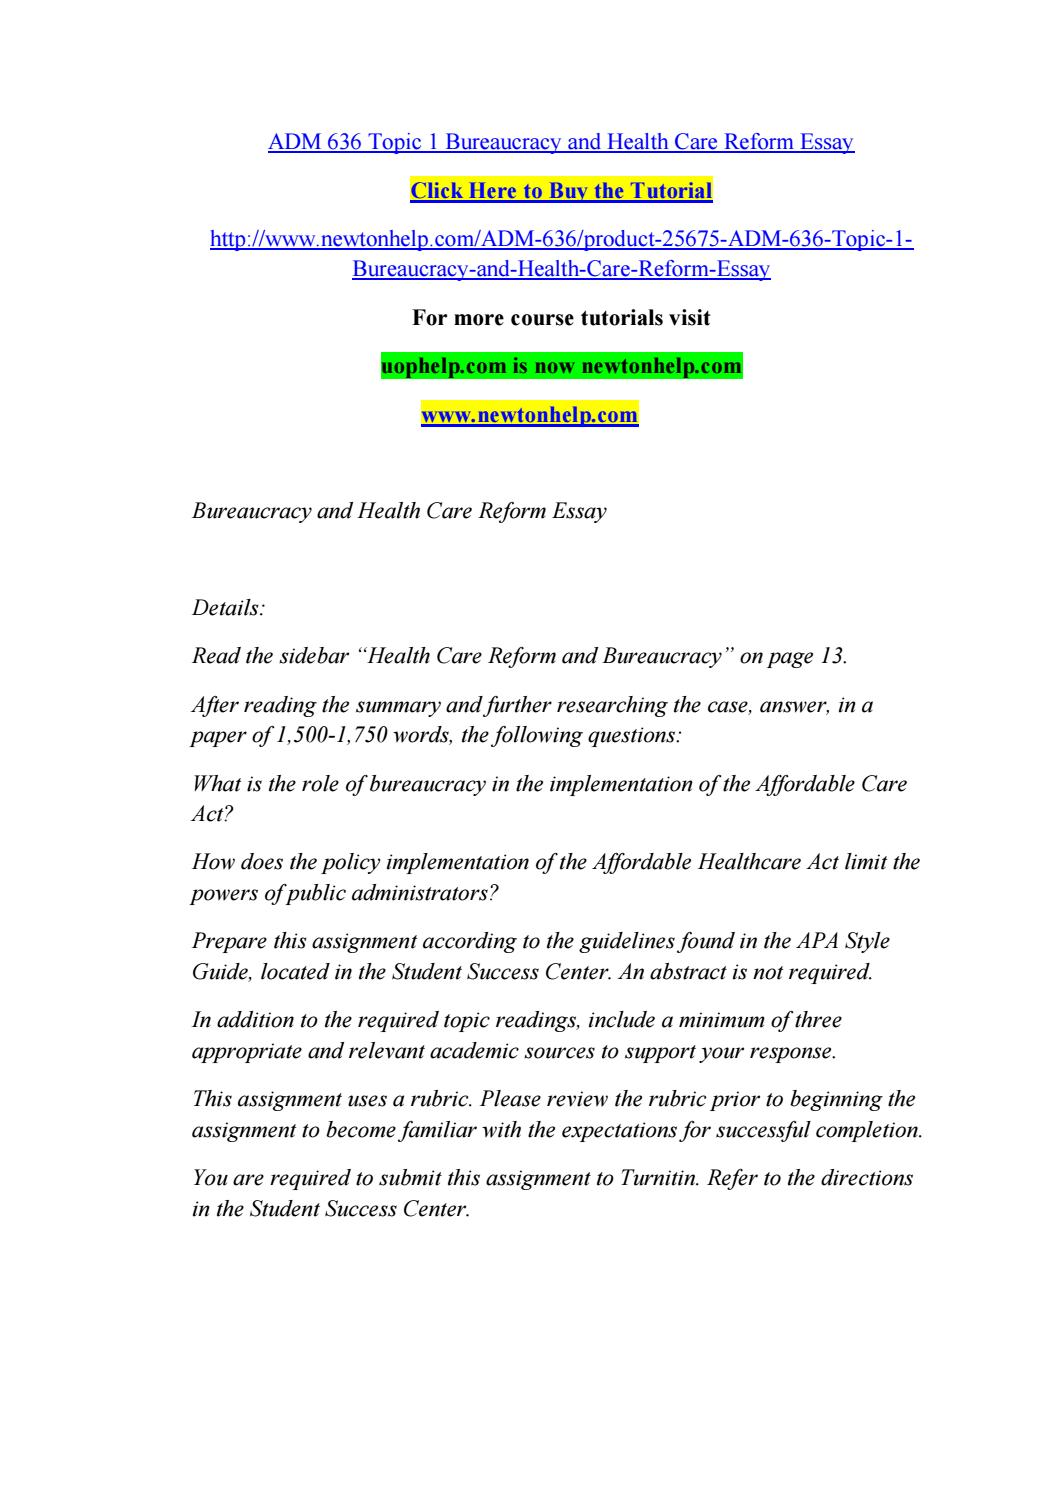 009 Health Care Essay Example Affordable Act Obamacare Com English Speech P Argumentative Impressive Universal Introduction Assignment Cost Access And Quality In Full